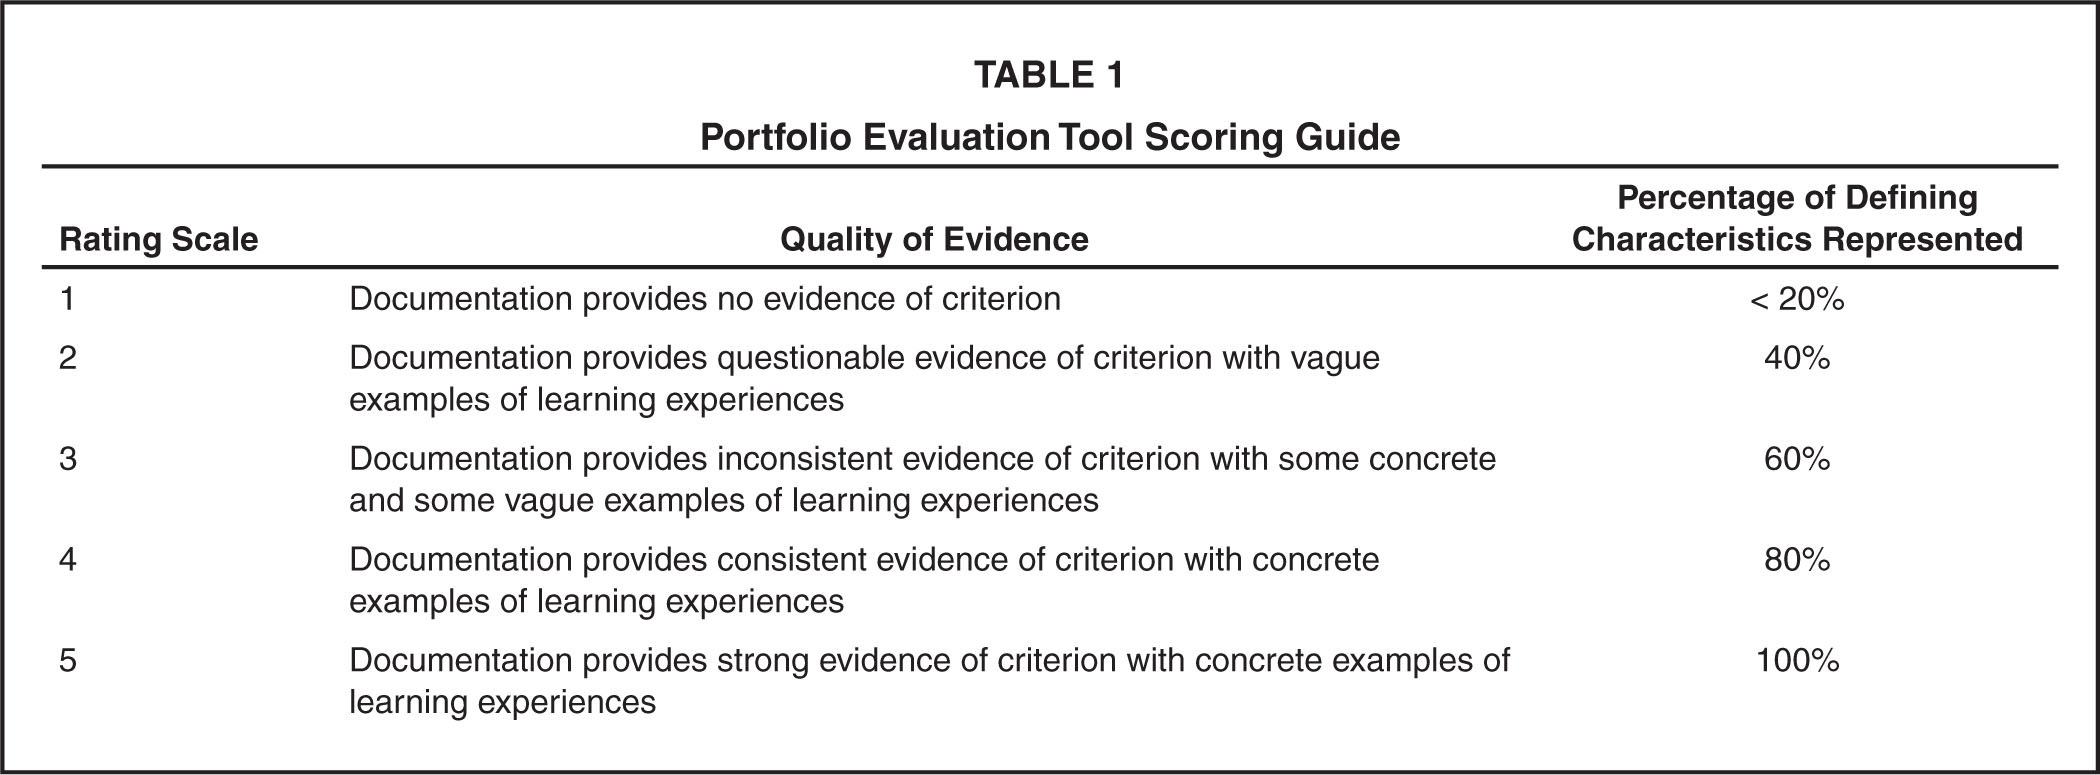 Portfolio Evaluation Tool Scoring Guide